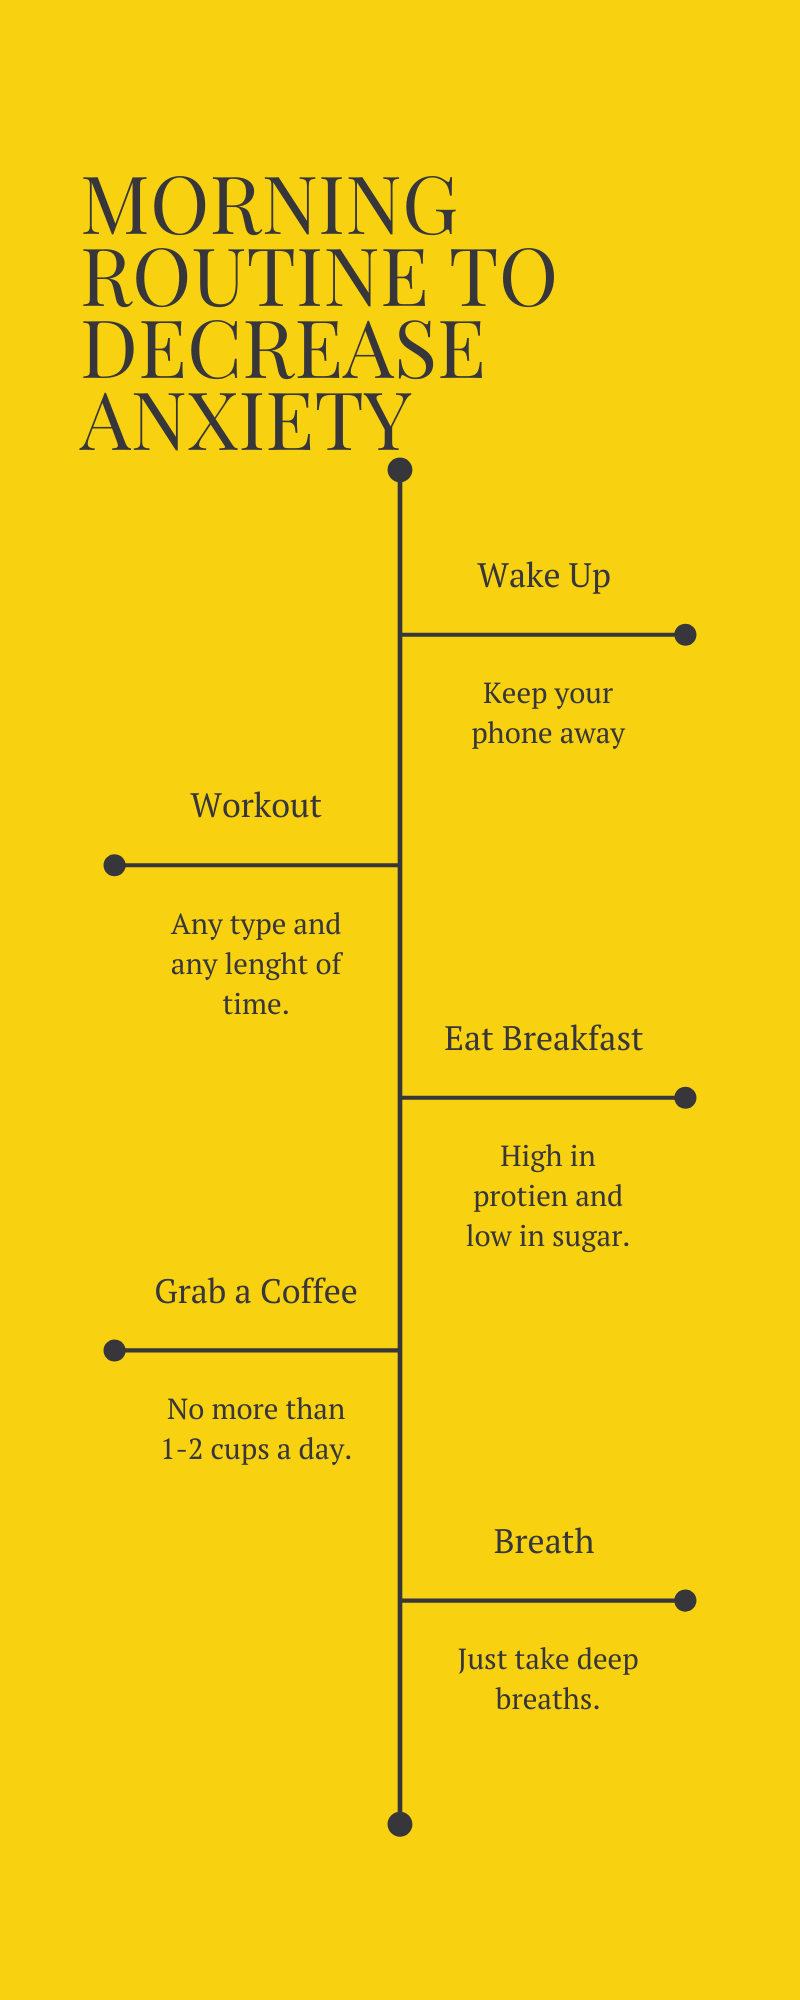 Morning Routine to decrease anxiety